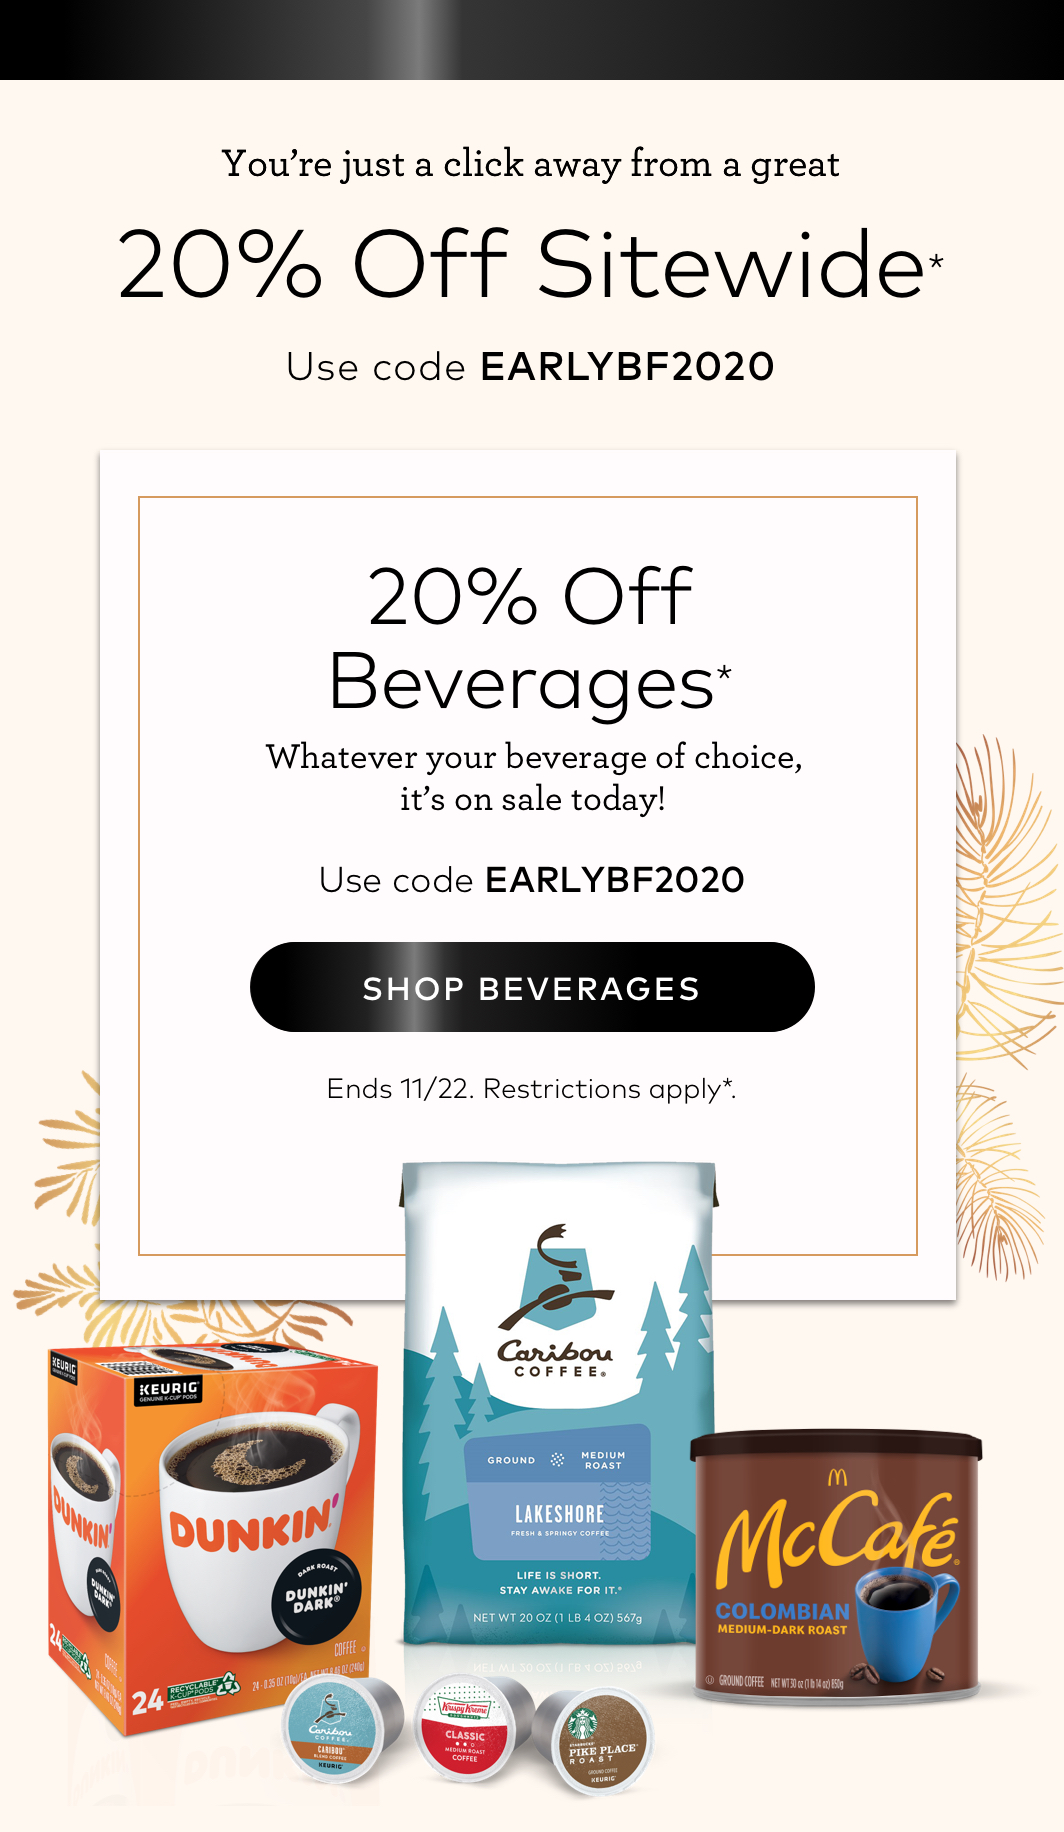 20% off Beverages with EARLYBF2020